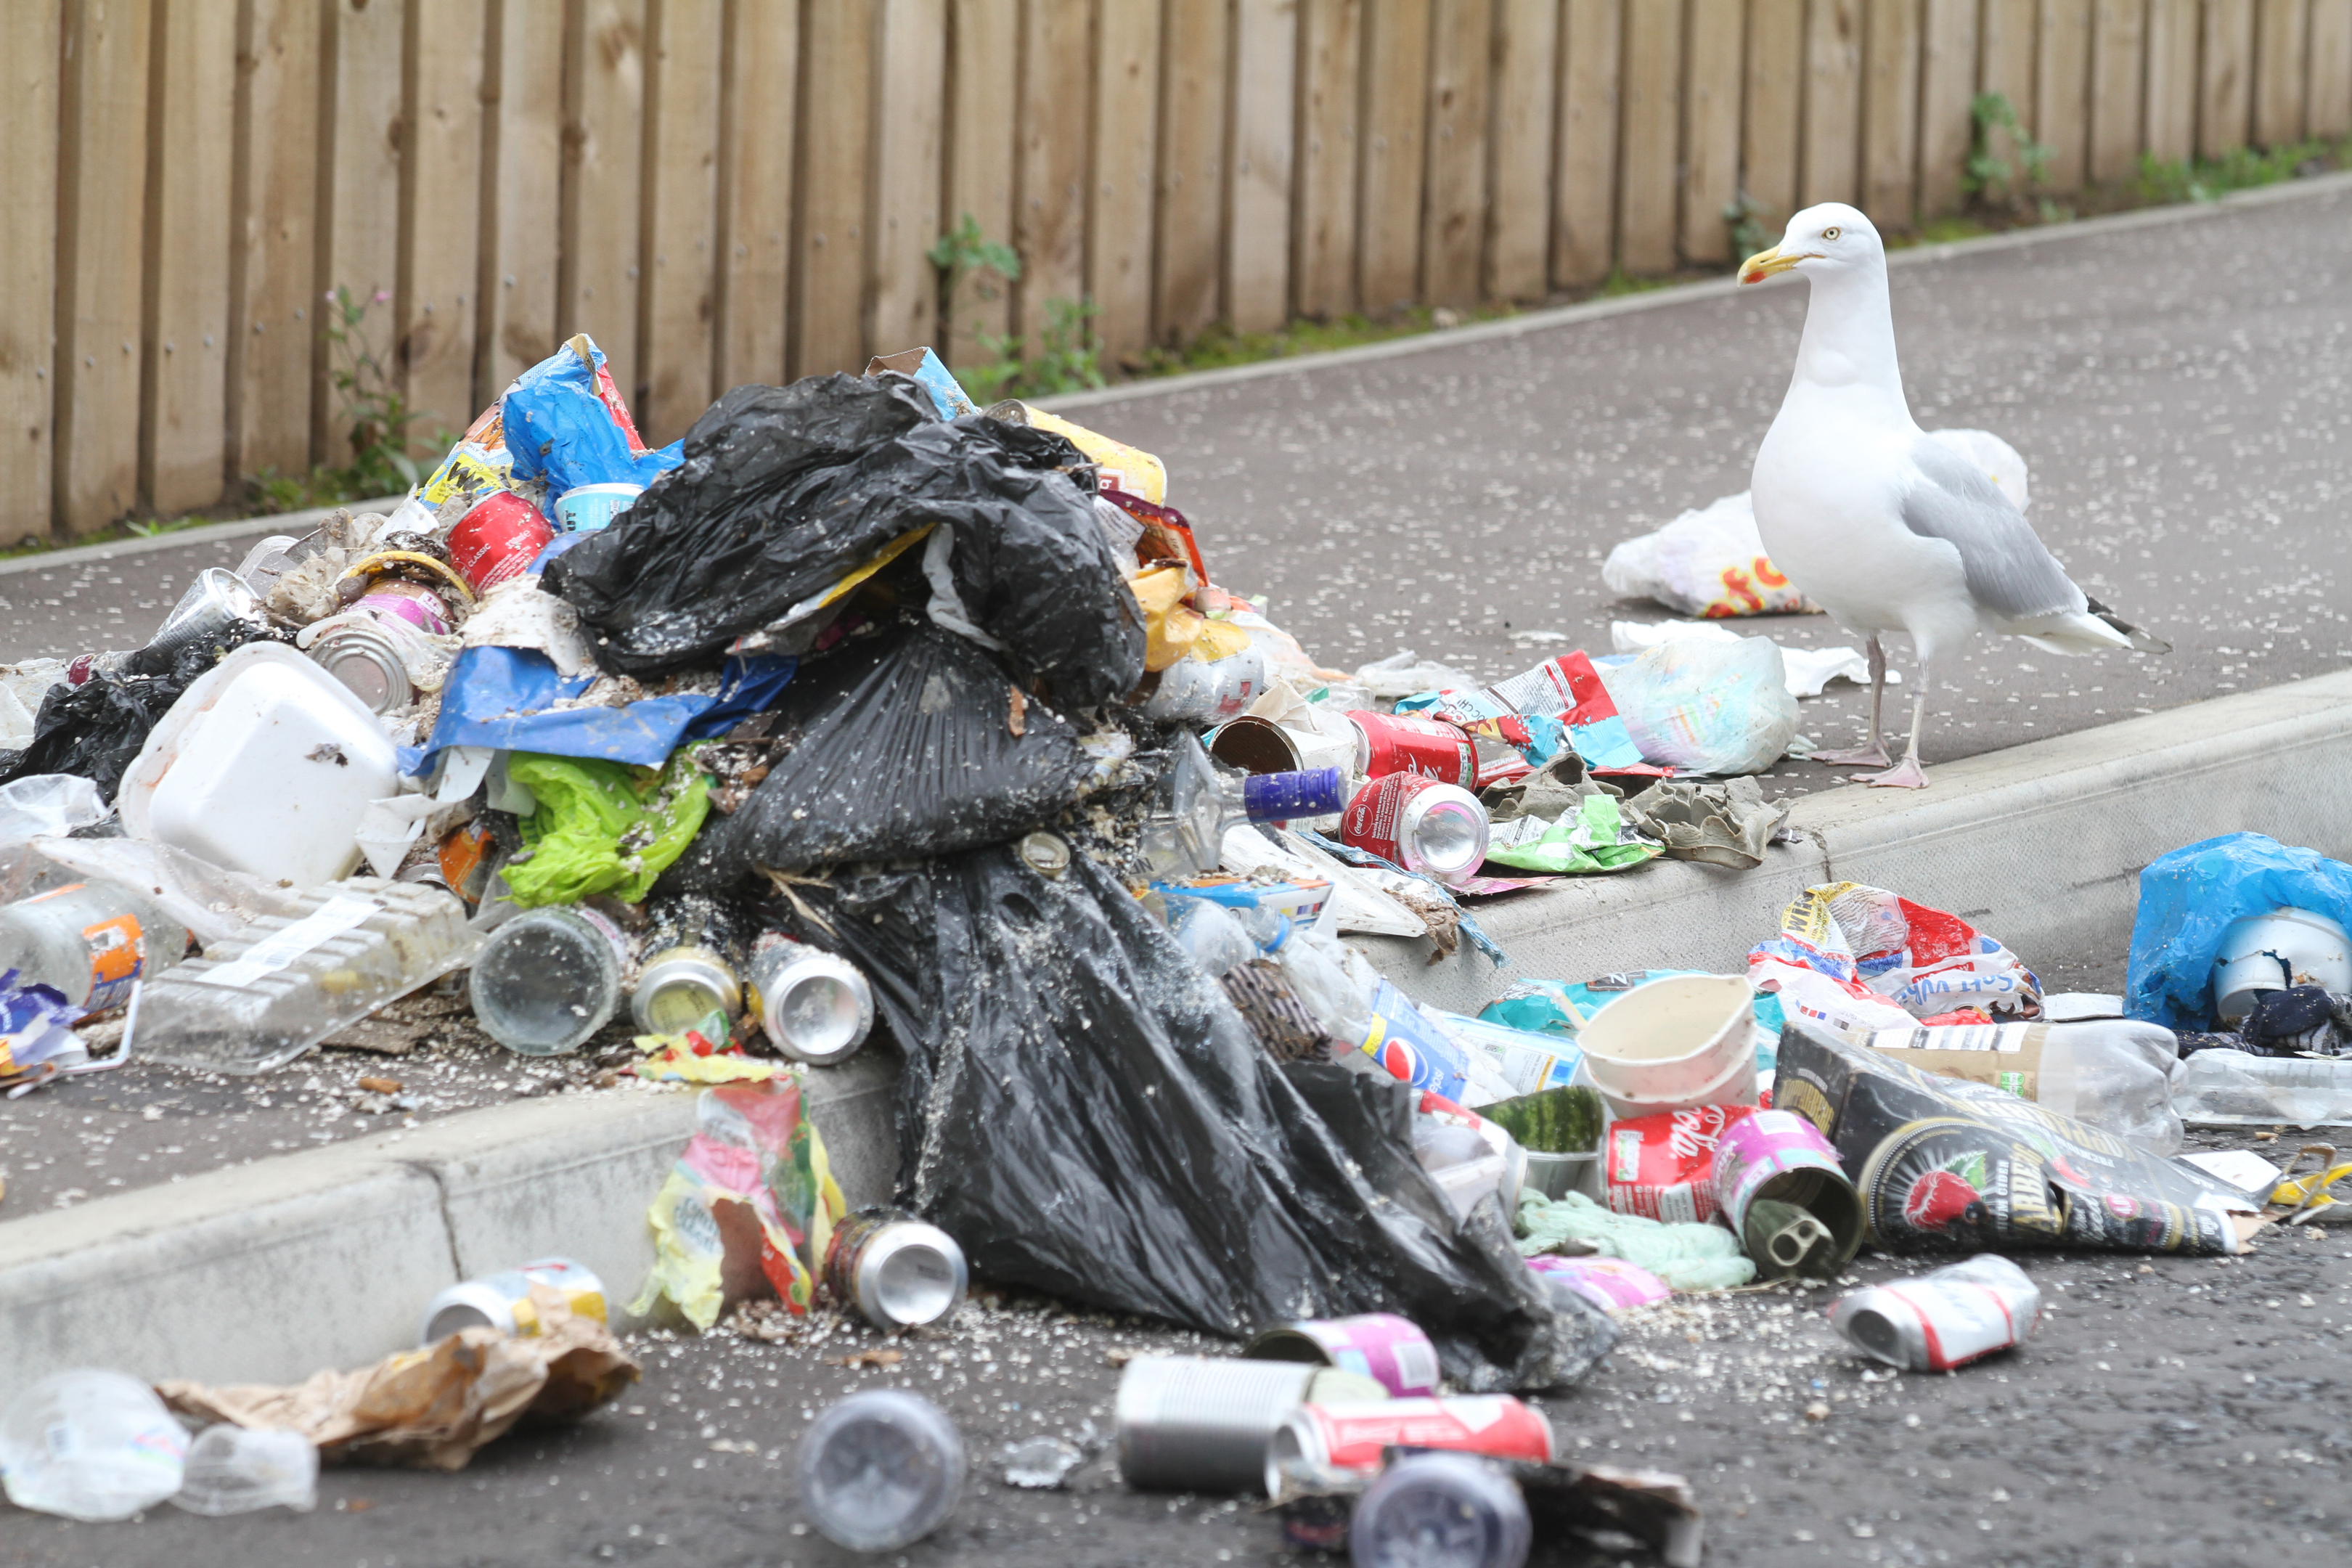 Communities in Angus are going to war on litter.